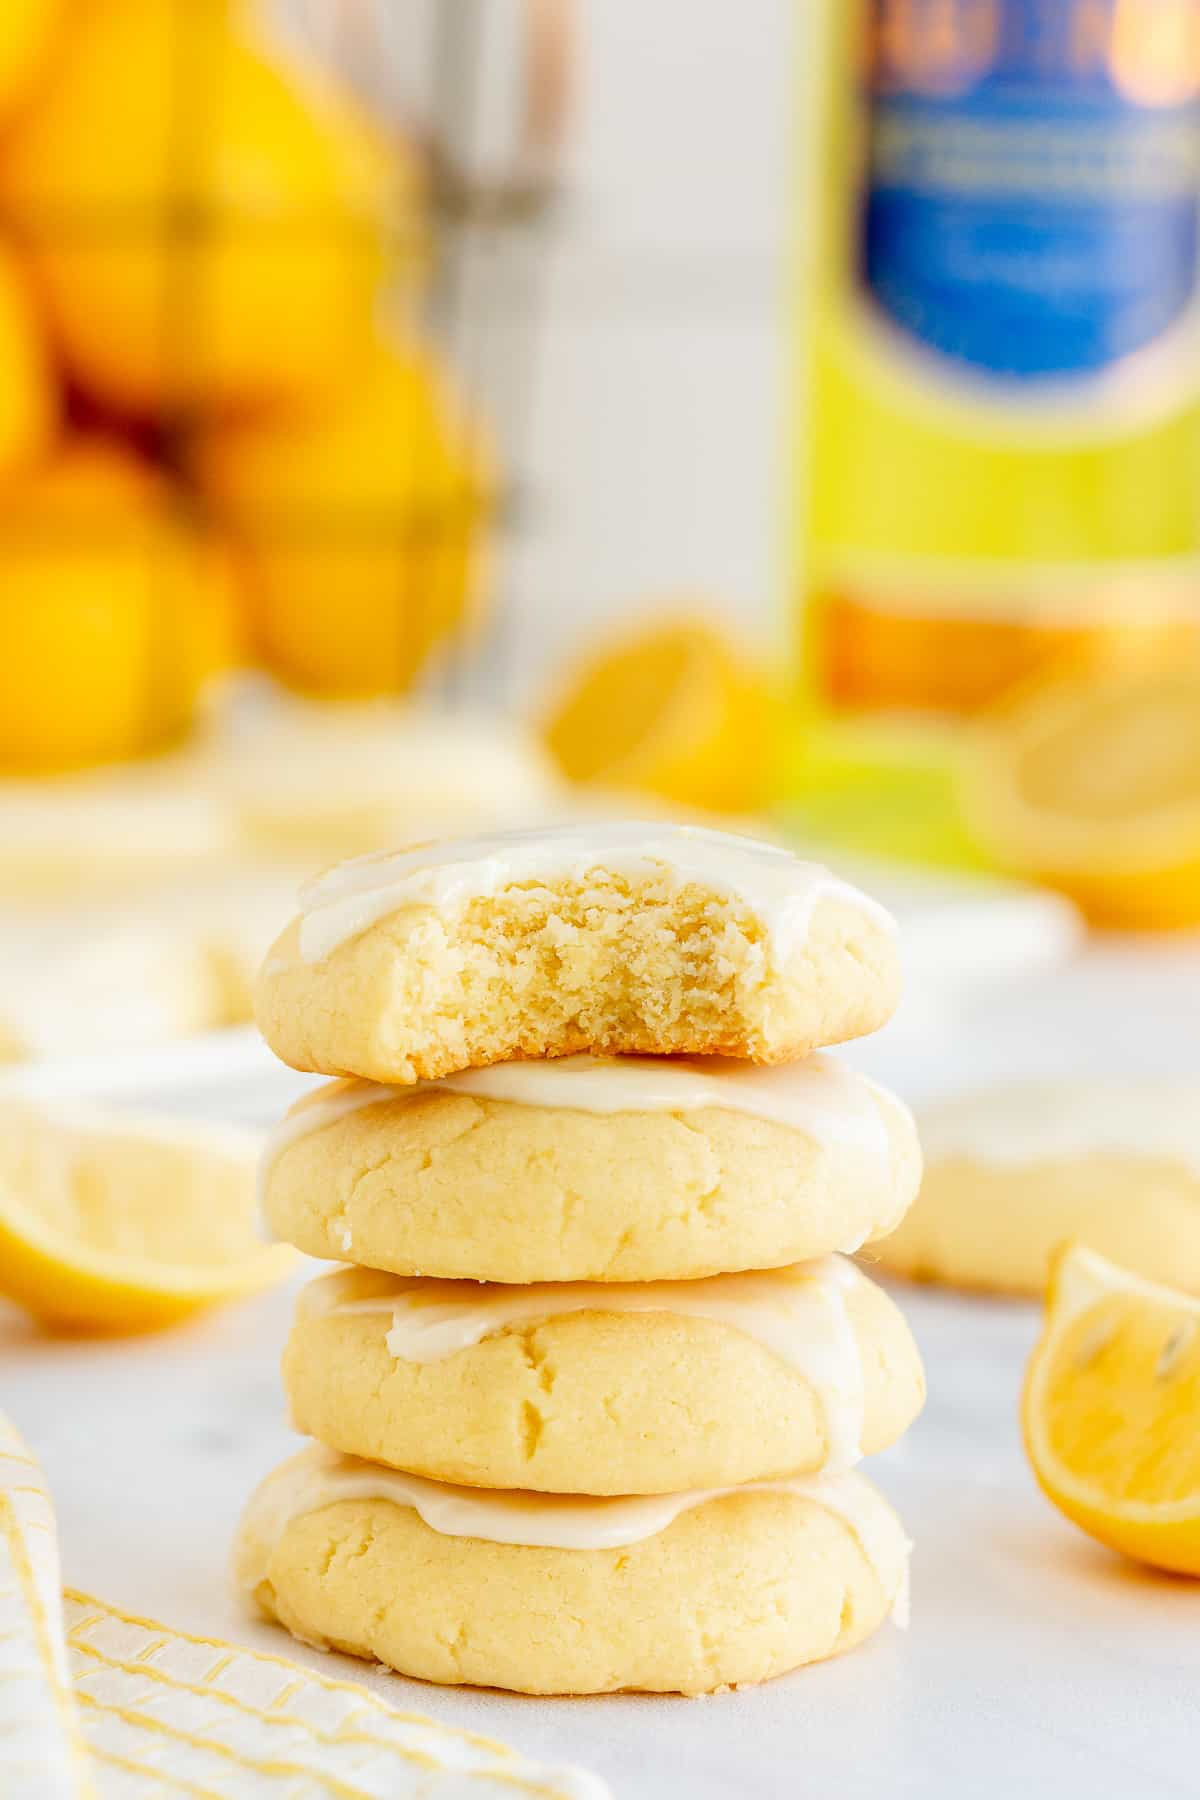 A stack of lemon cookies with a bite missing from the one on top.